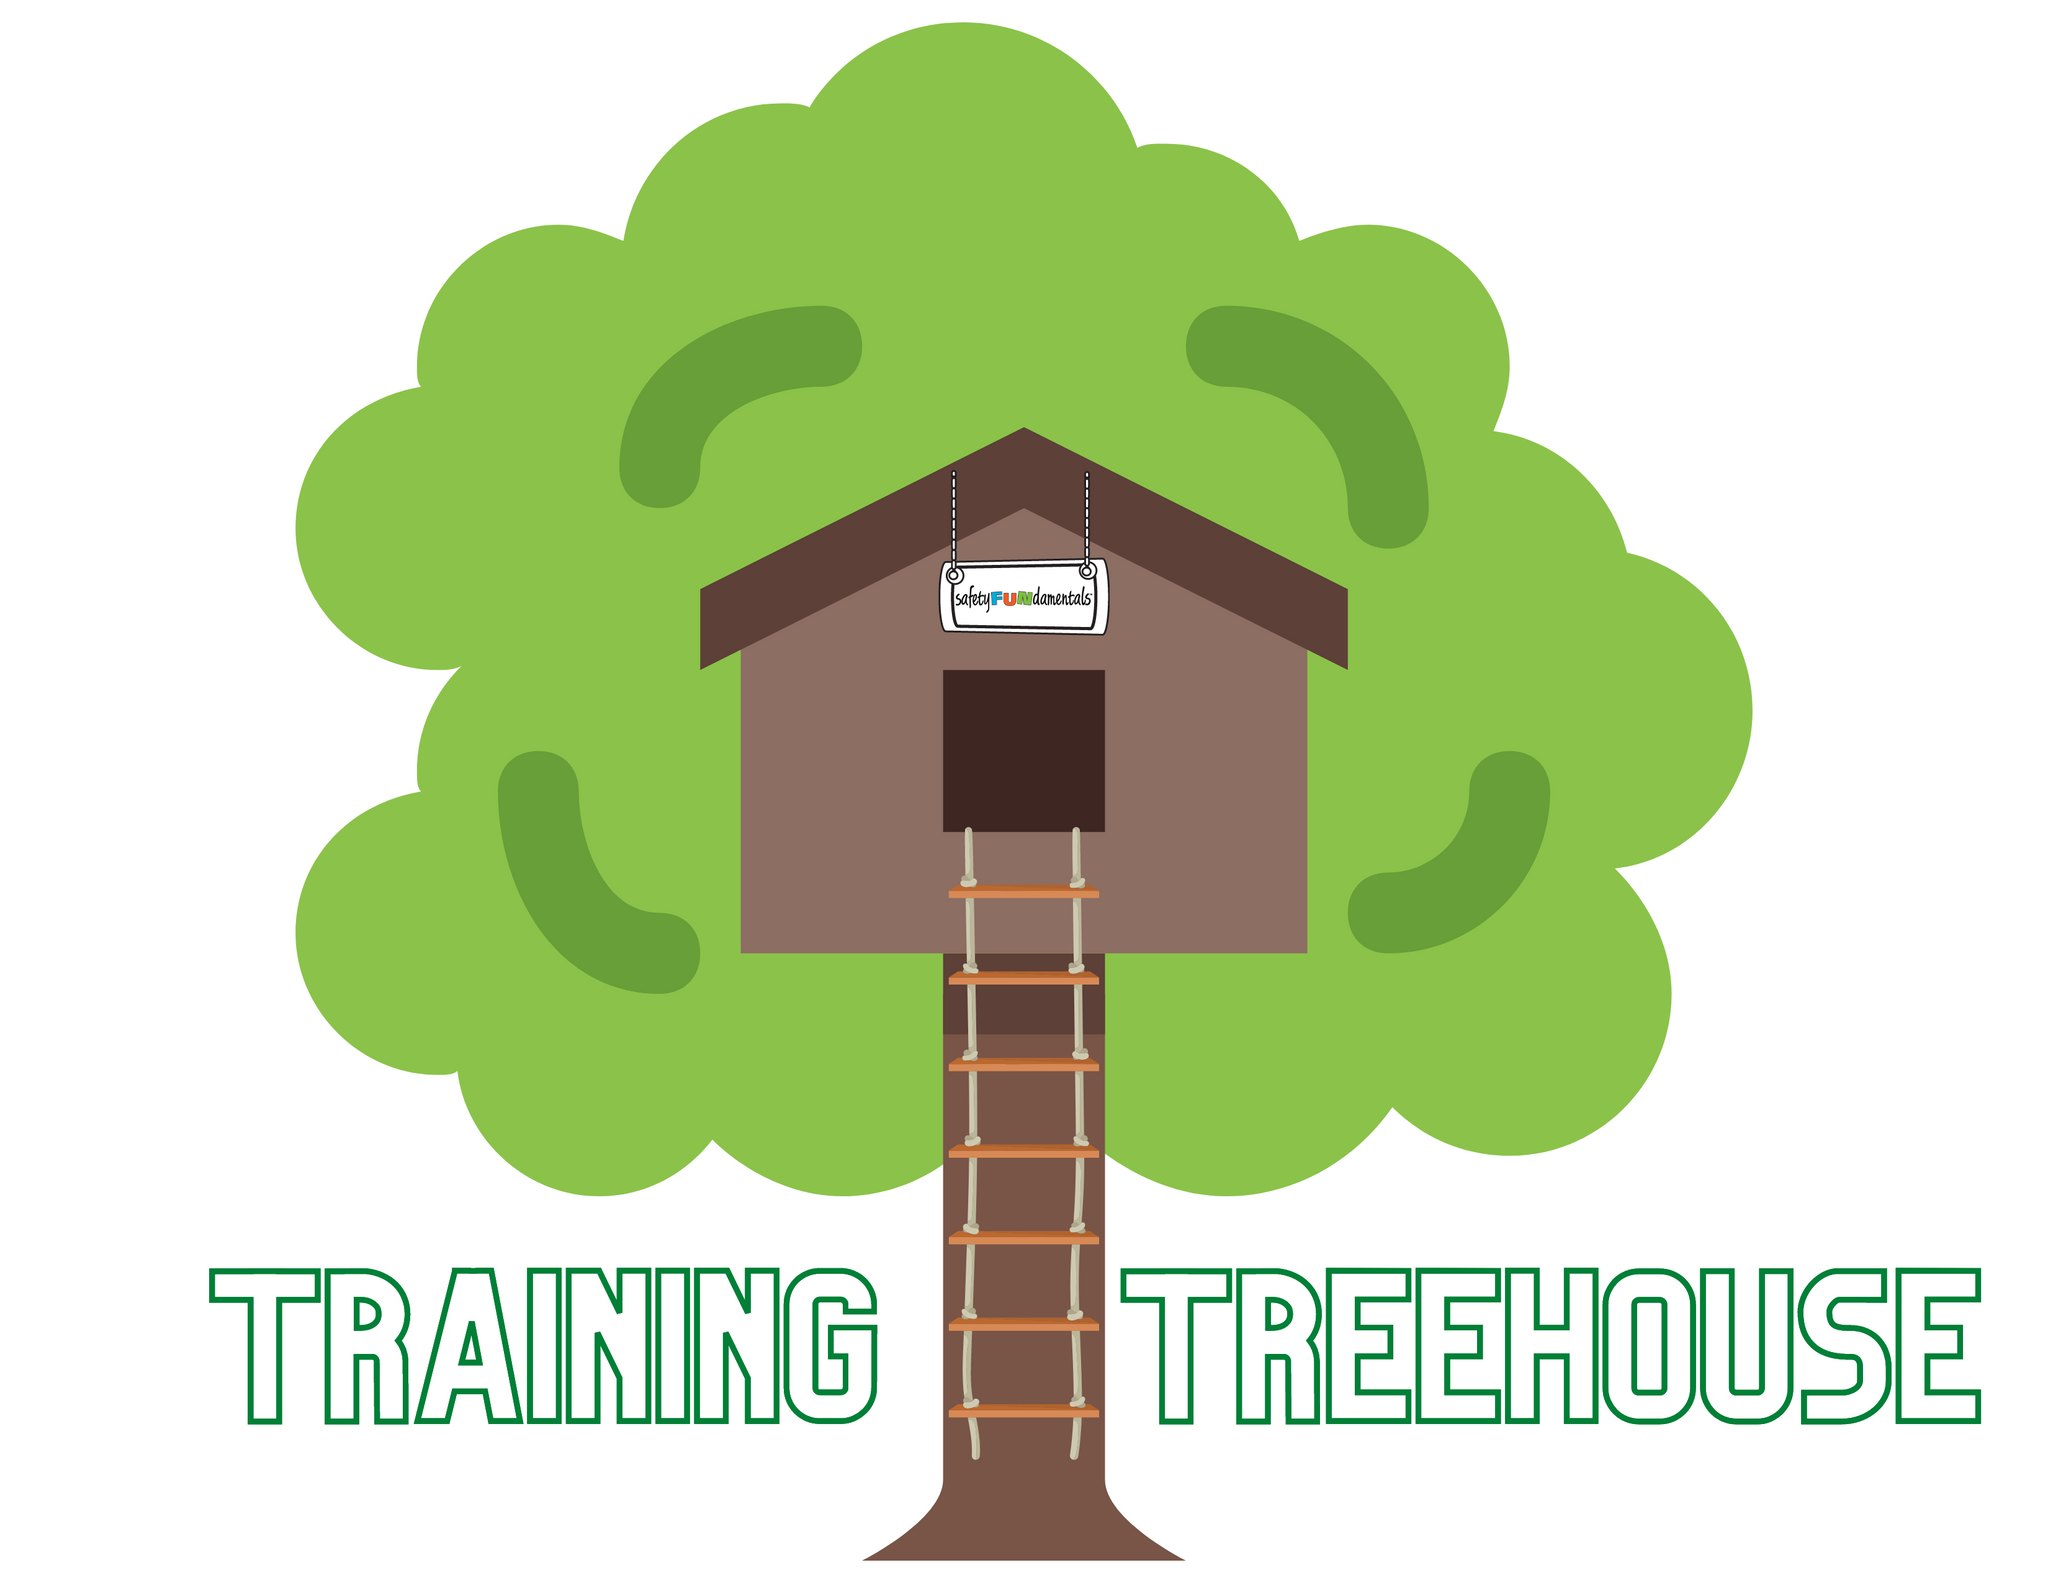 Plan to Join Us in the Training Treehouse!